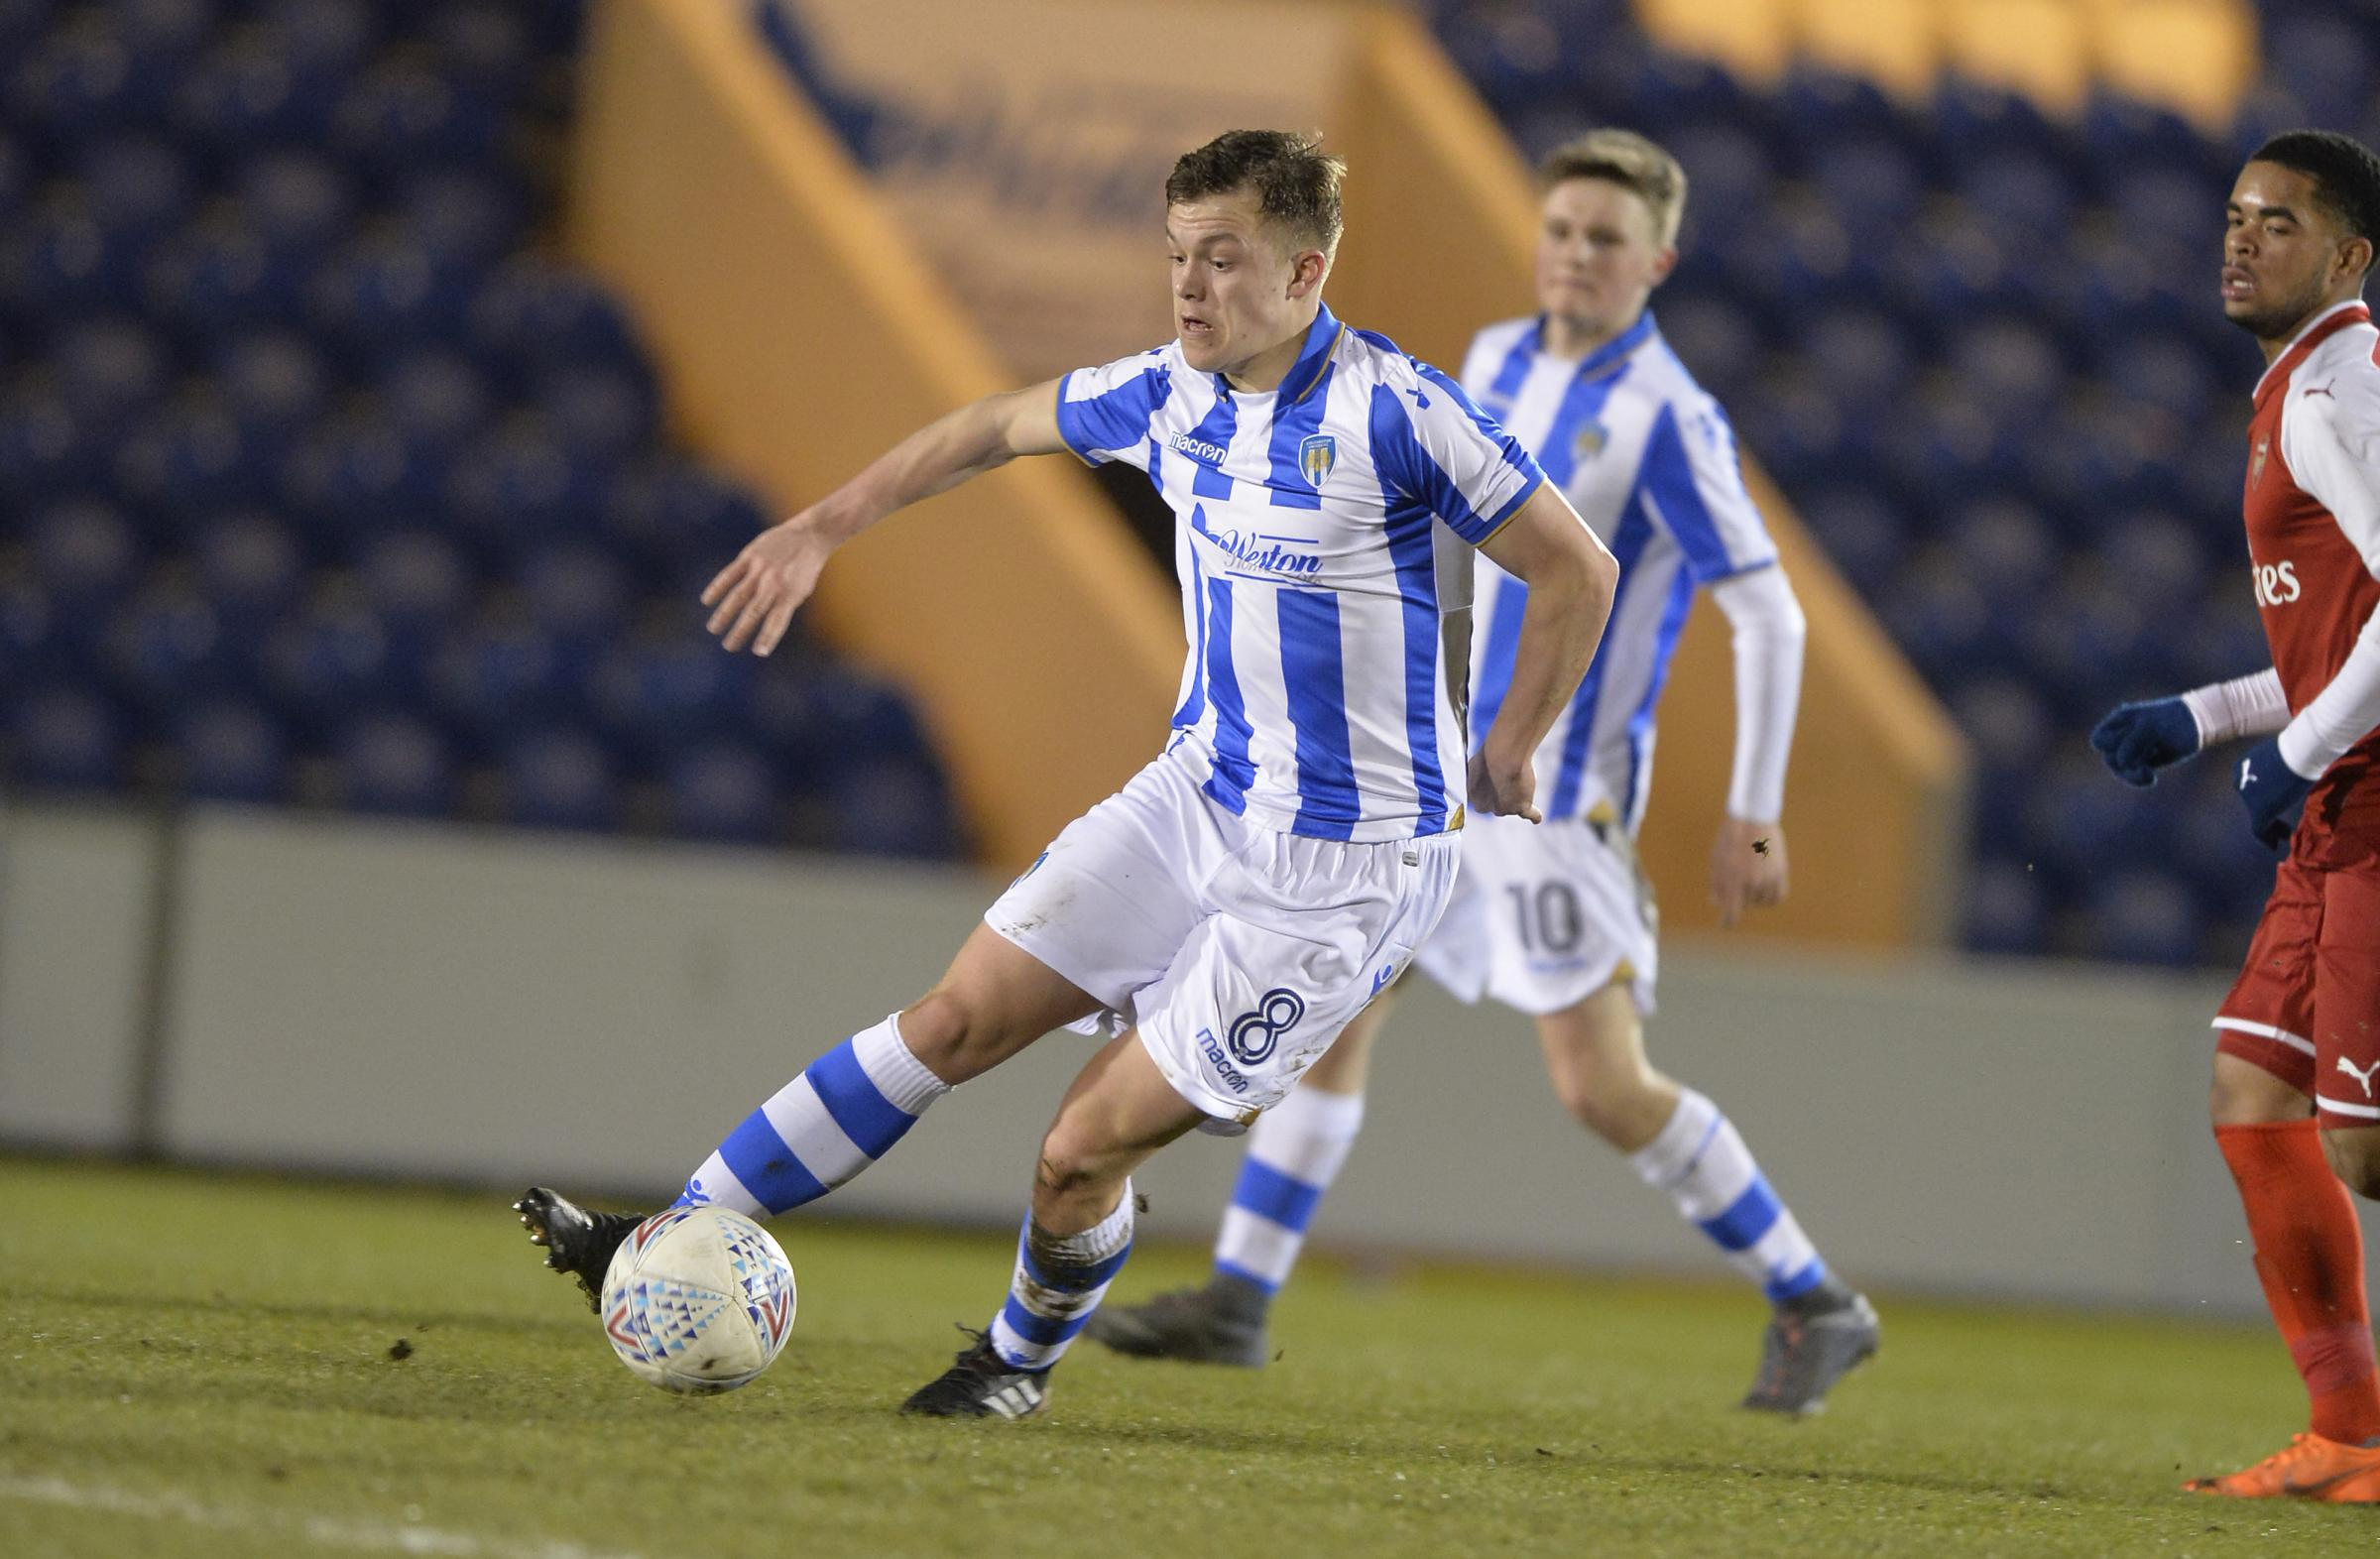 Assist - Callum Anderson provided the pass for Jake Hutchinson's second goal for Colchester United under-18s against Watford Picture: STEVE BRADING